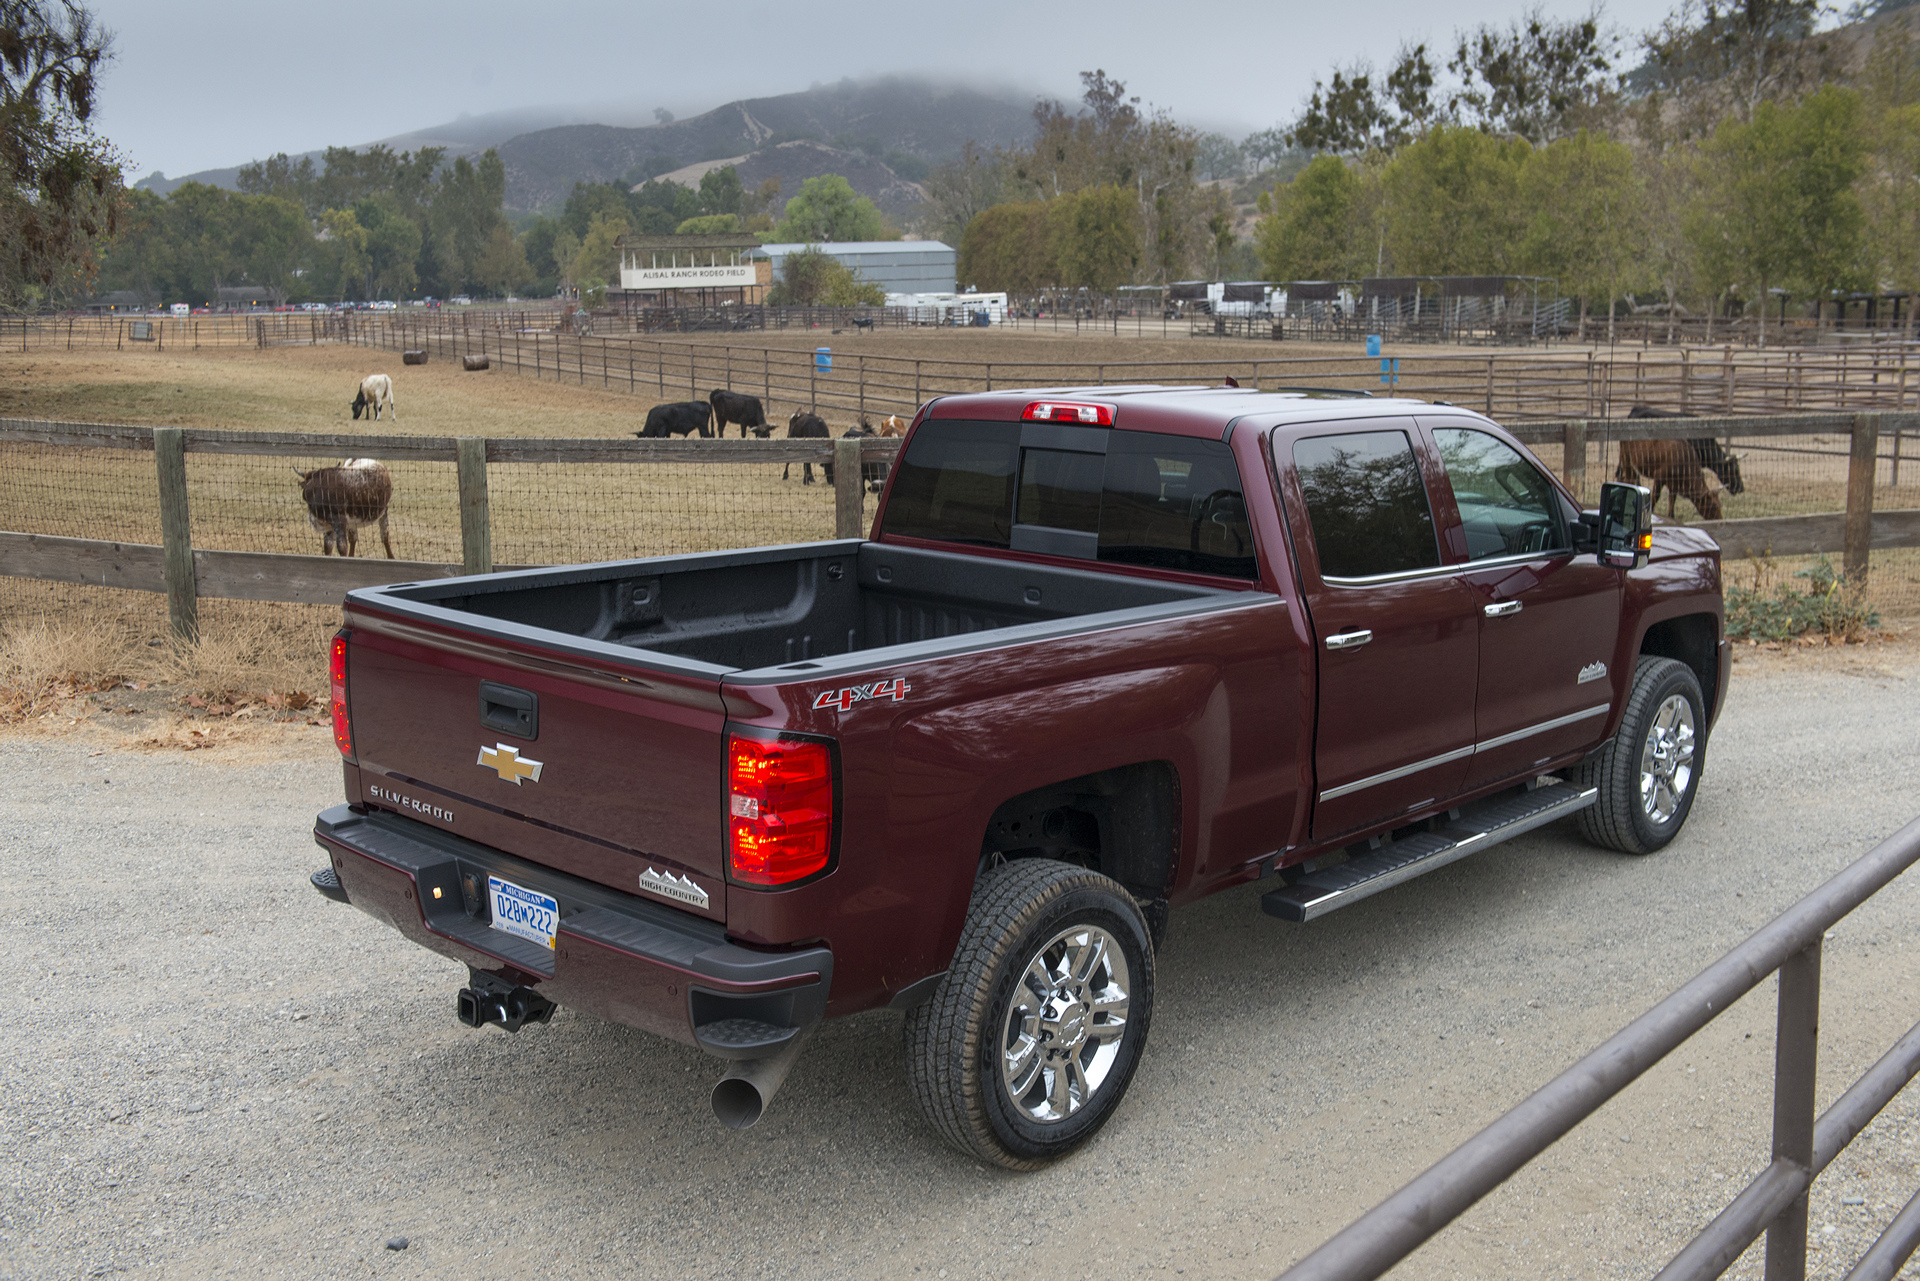 2016 Chevrolet Silverado 2500 HD All Terrain © General Motors